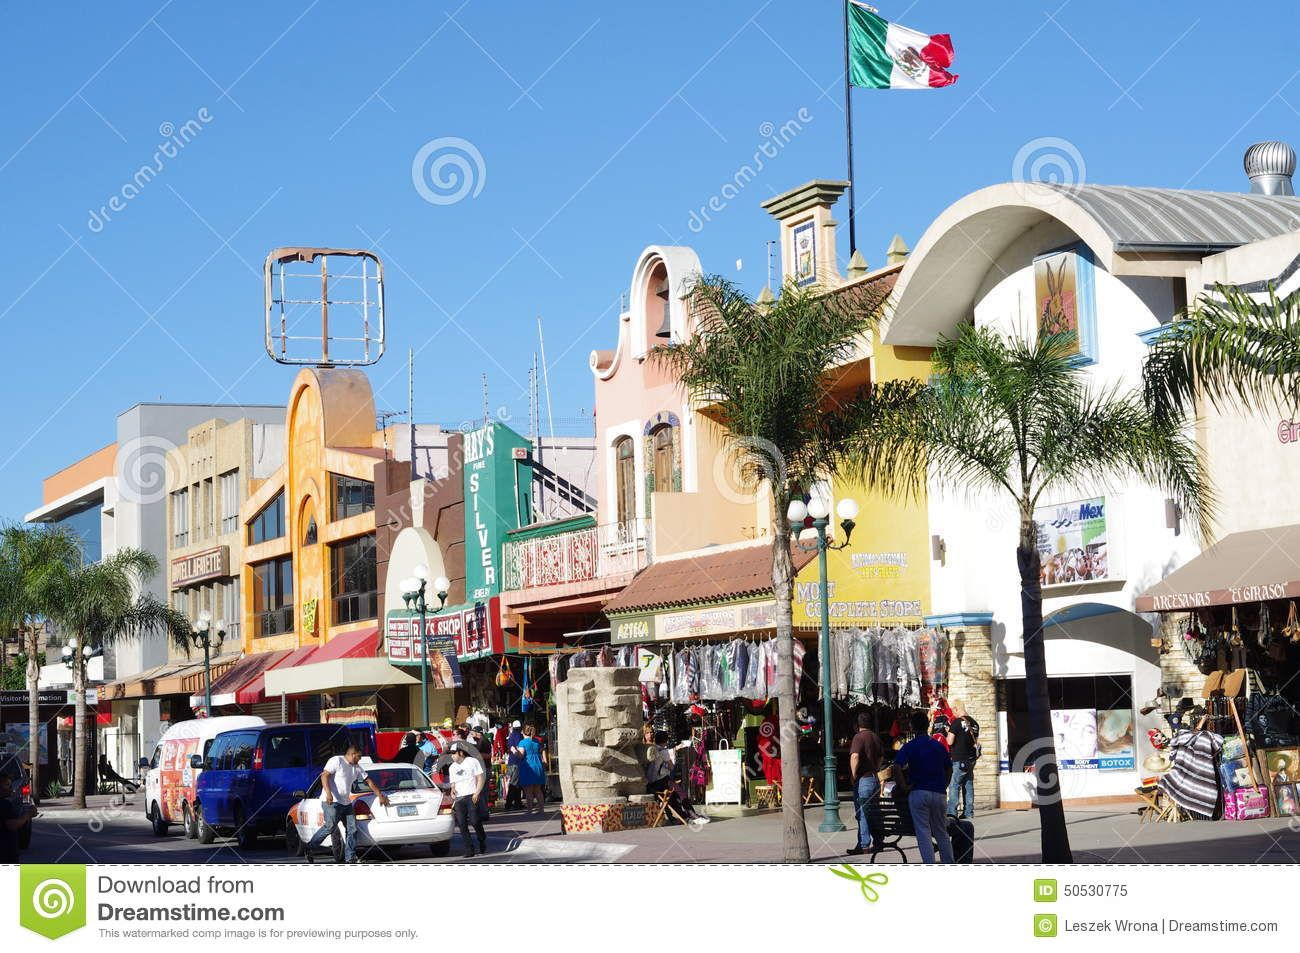 Revolution Avenue is a tourist attraction notable for the visitors who are crossing the border daily from San Diego, California.